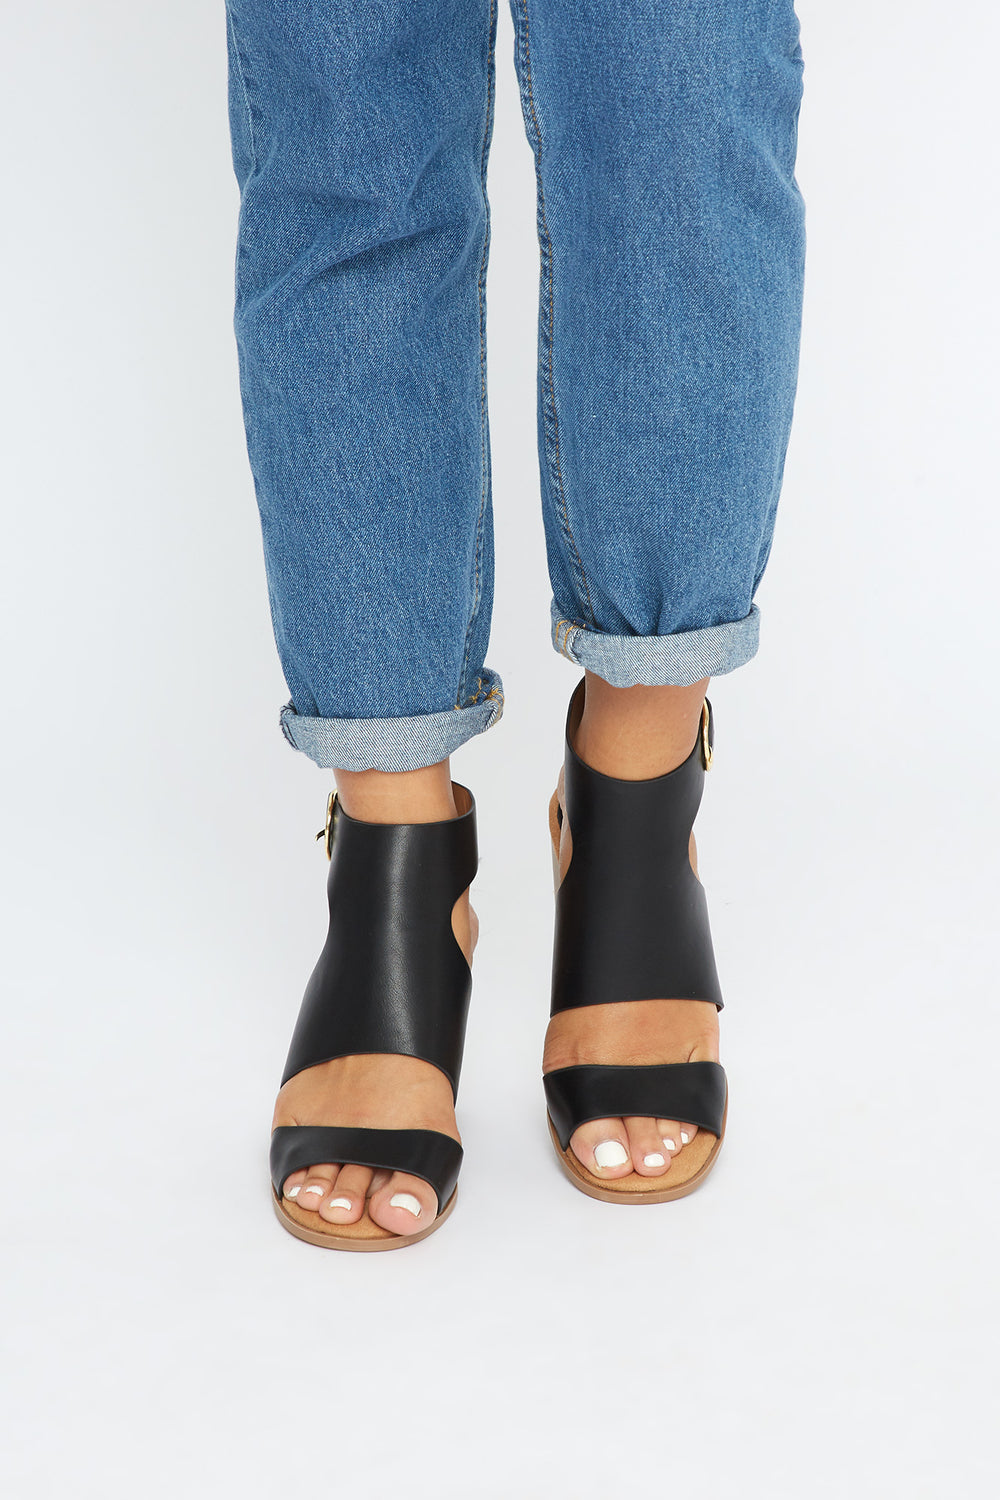 Cut Out Faux-Leather Block Heel Sandal Black